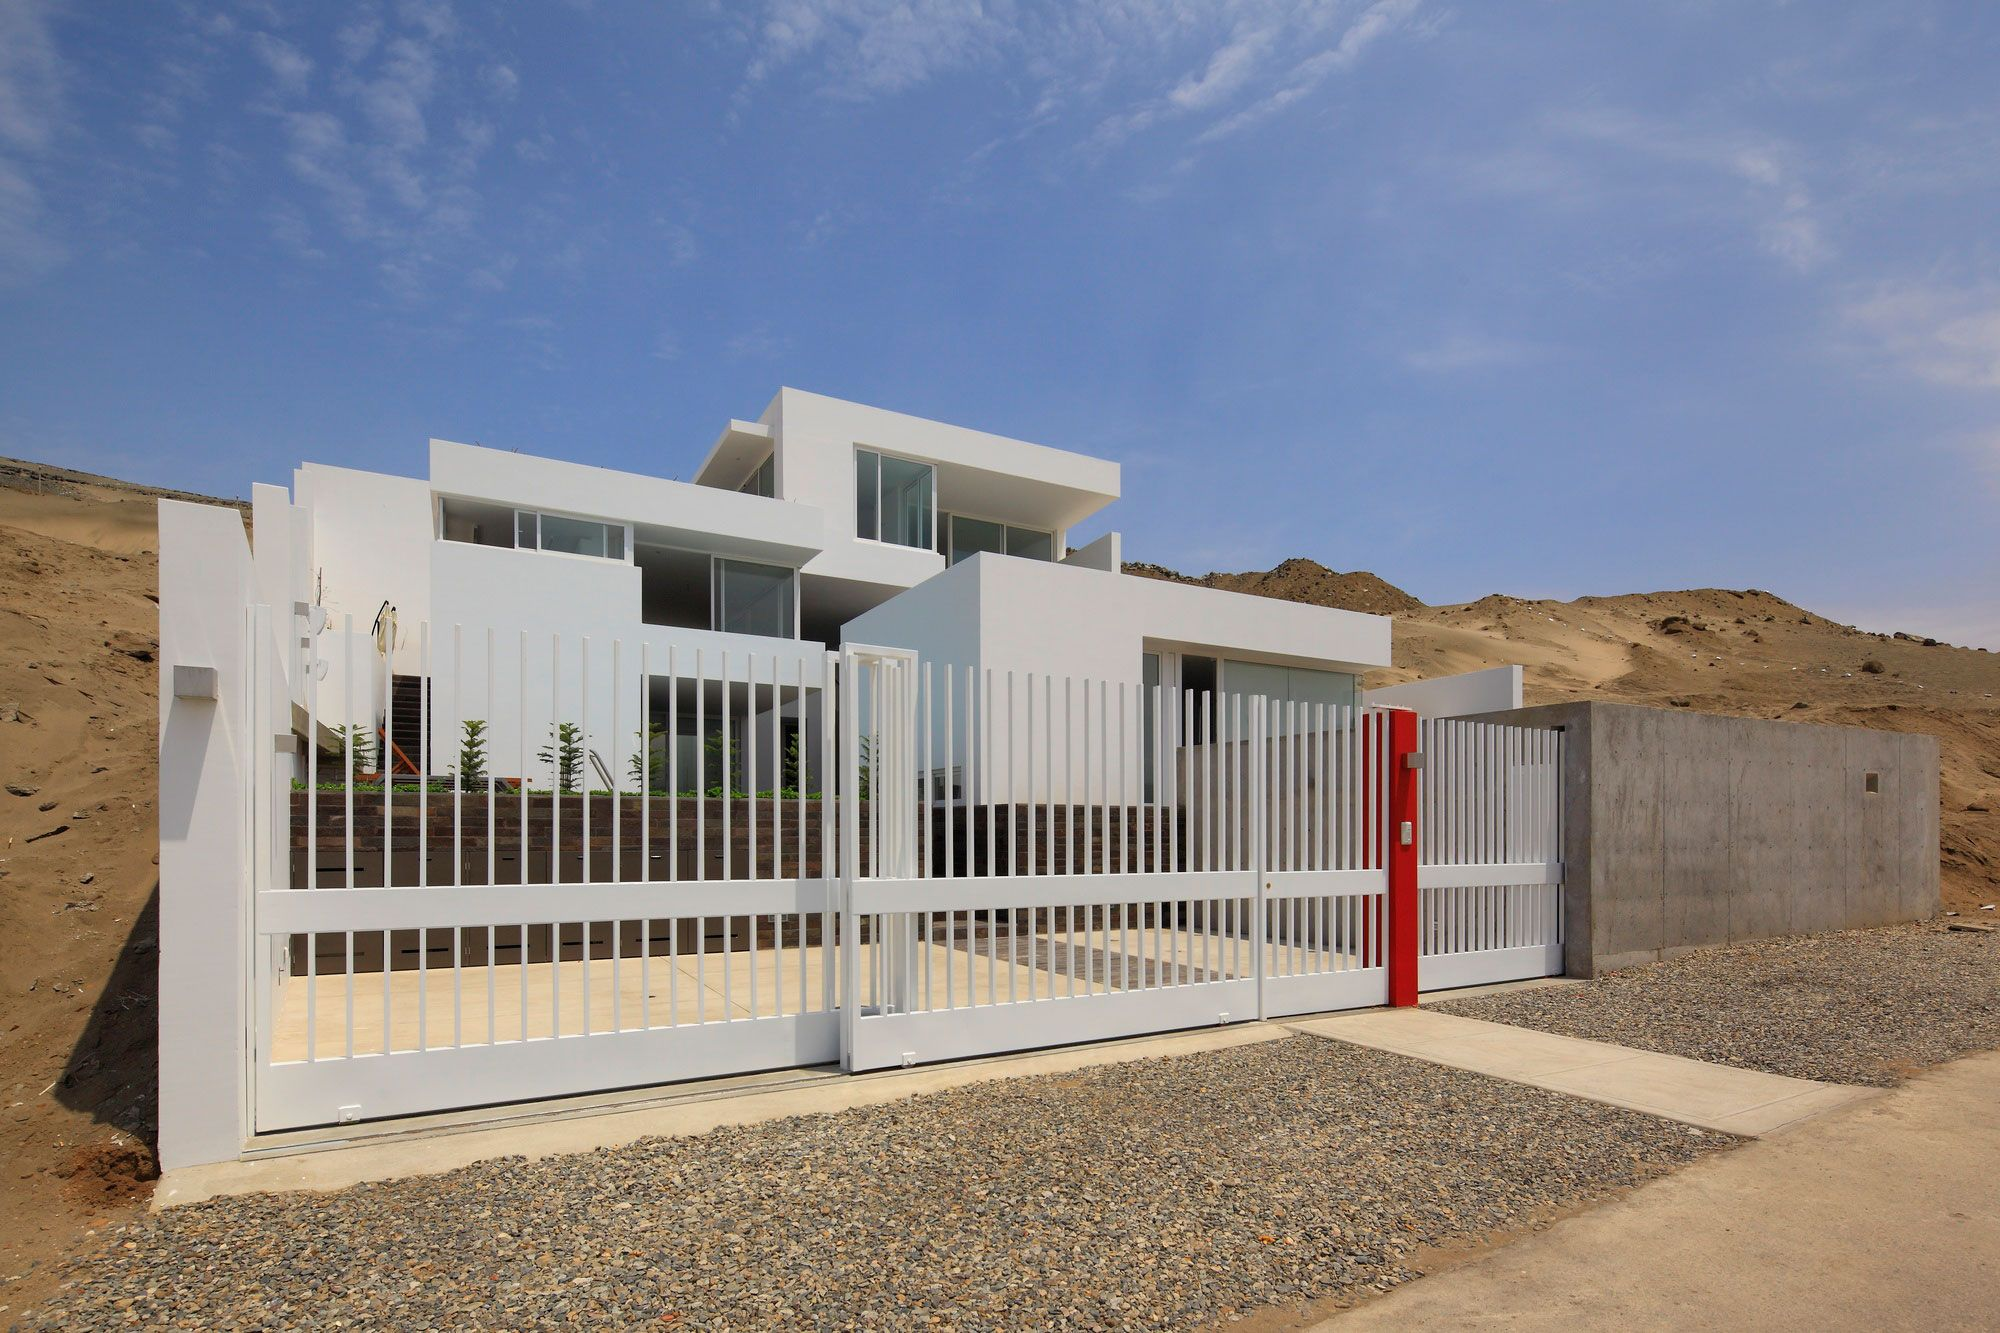 White Gate Also Concrete Wall Fence Near Brown Stone Wall Architecture House Designs Exterior Modern Fence Design